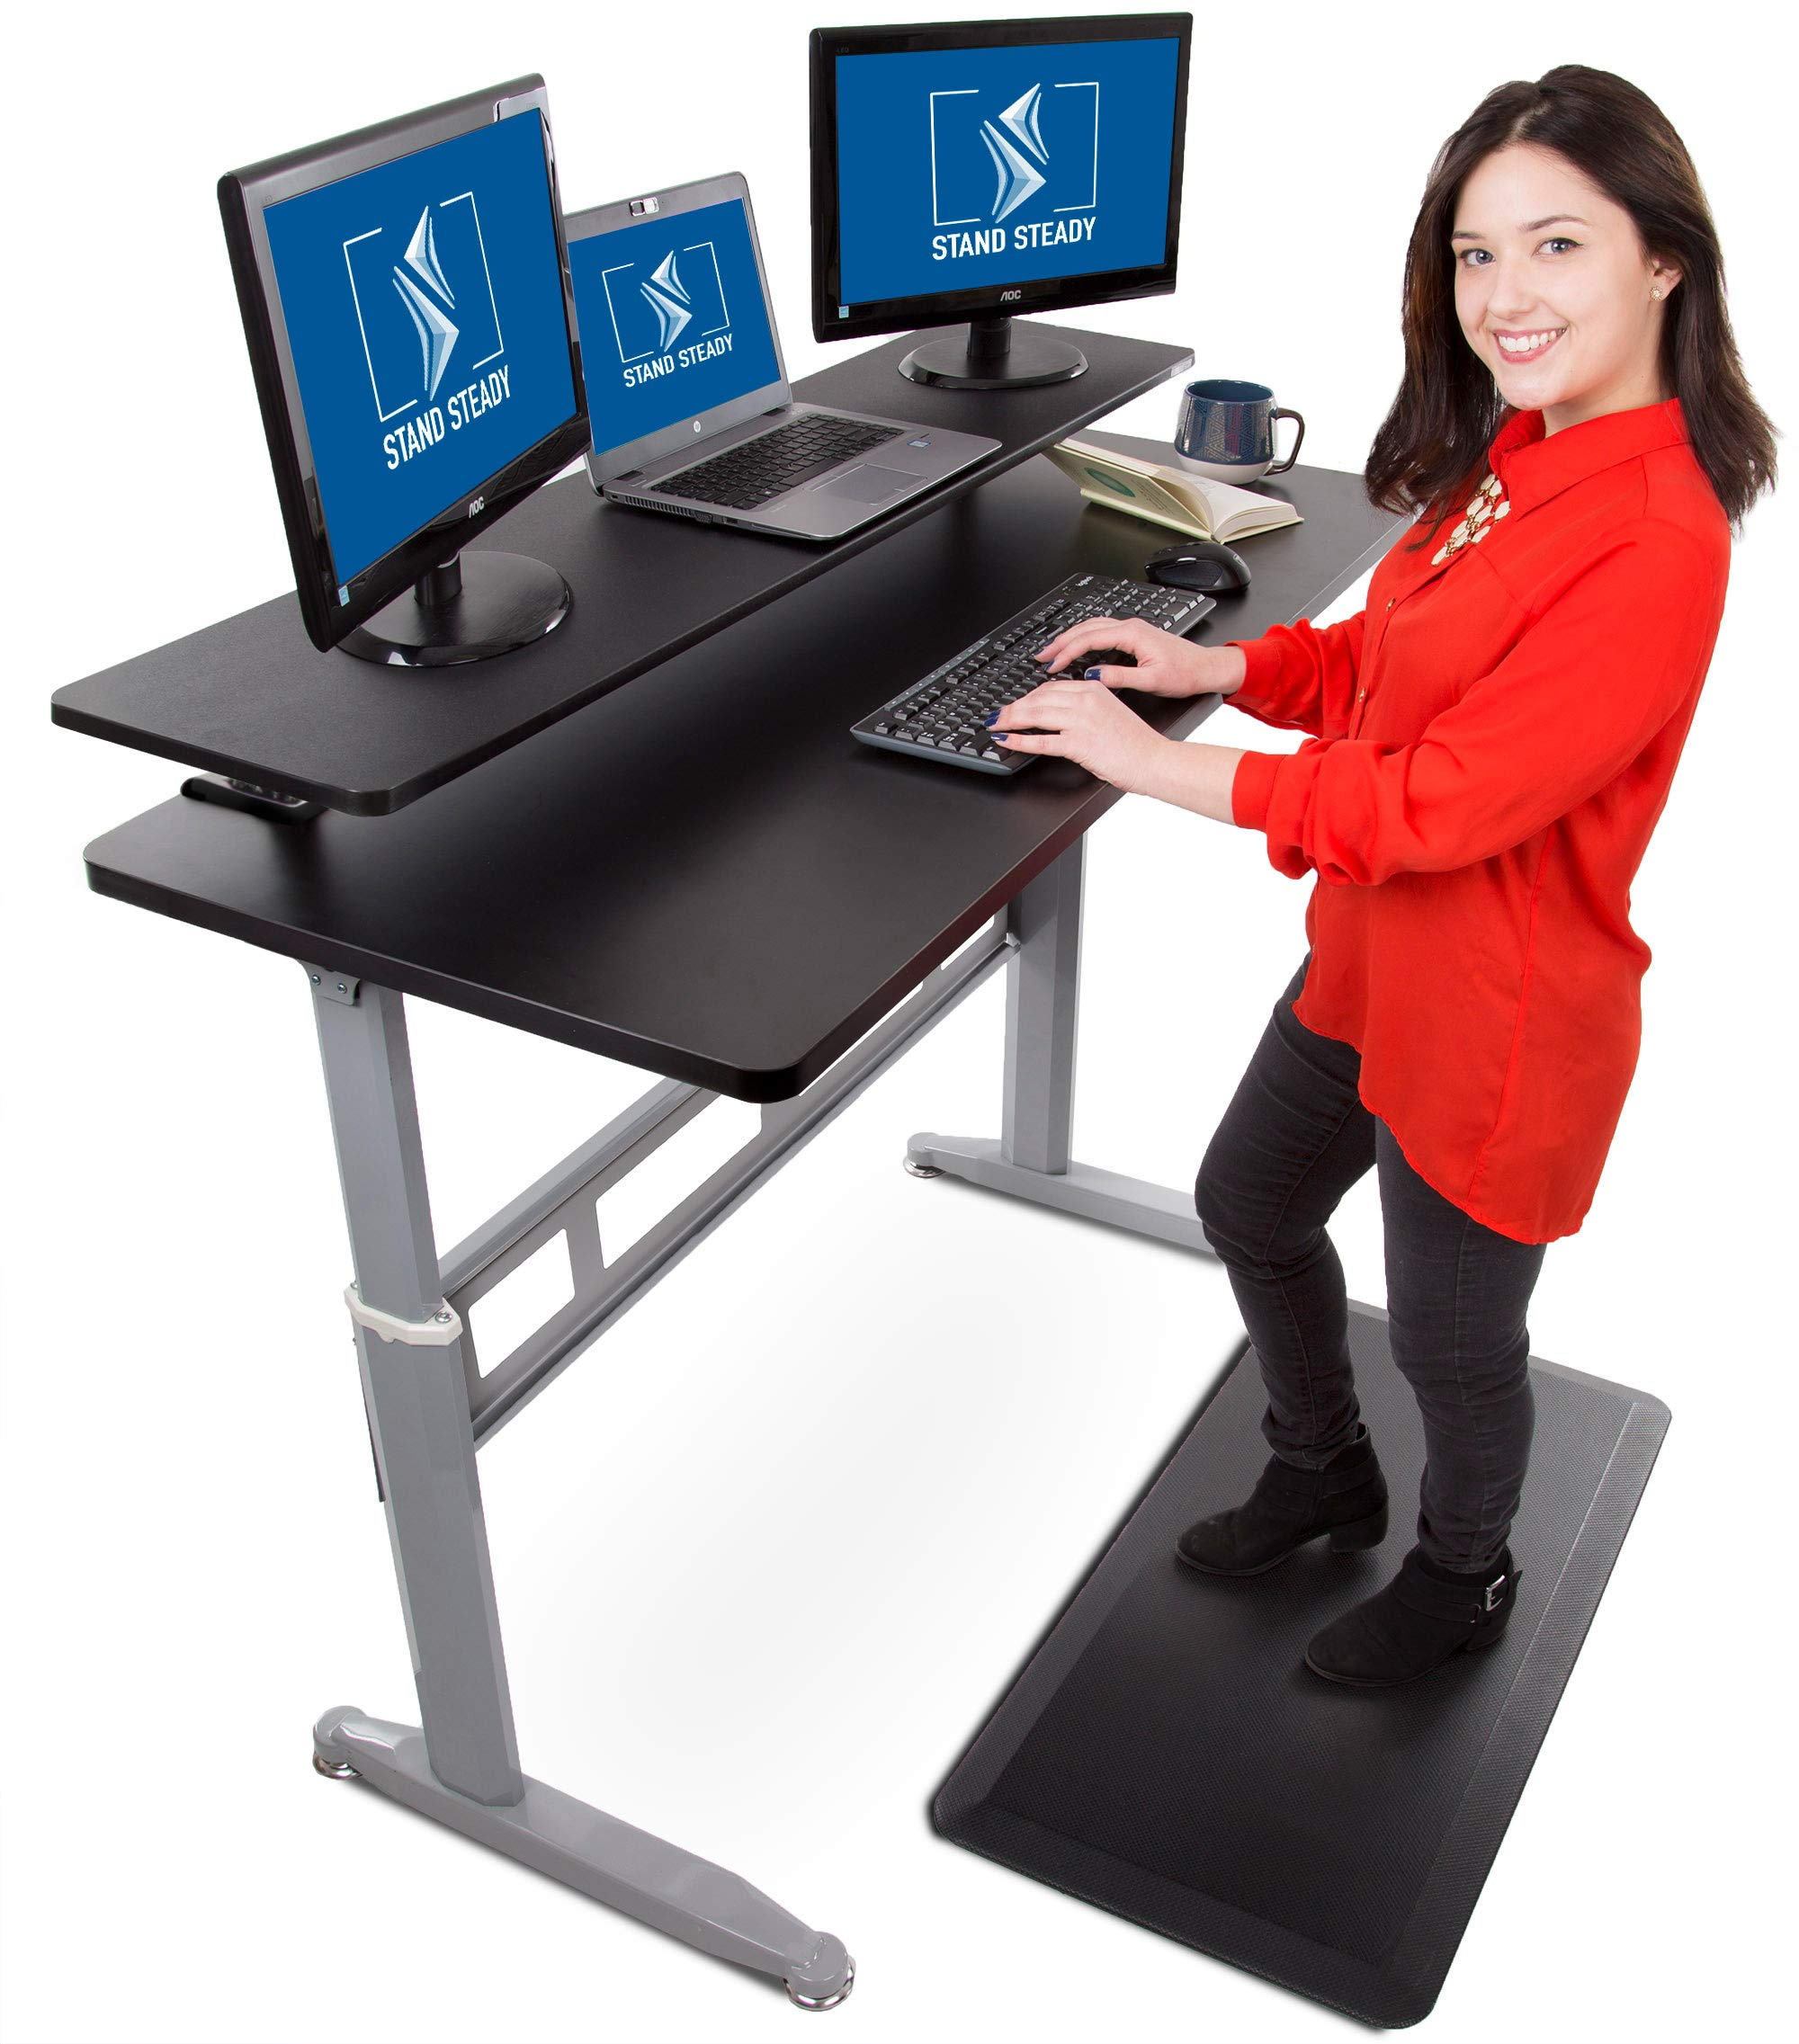 Stand Steady Tranzendesk 55 Inch Standing Desk with 55 Inch Clamp On Shelf - Easy Crank Stand Desk and Attachable Monitor Riser Stand Supports 3 Monitors and Adds Desk Space! (55''/Silver Legs)